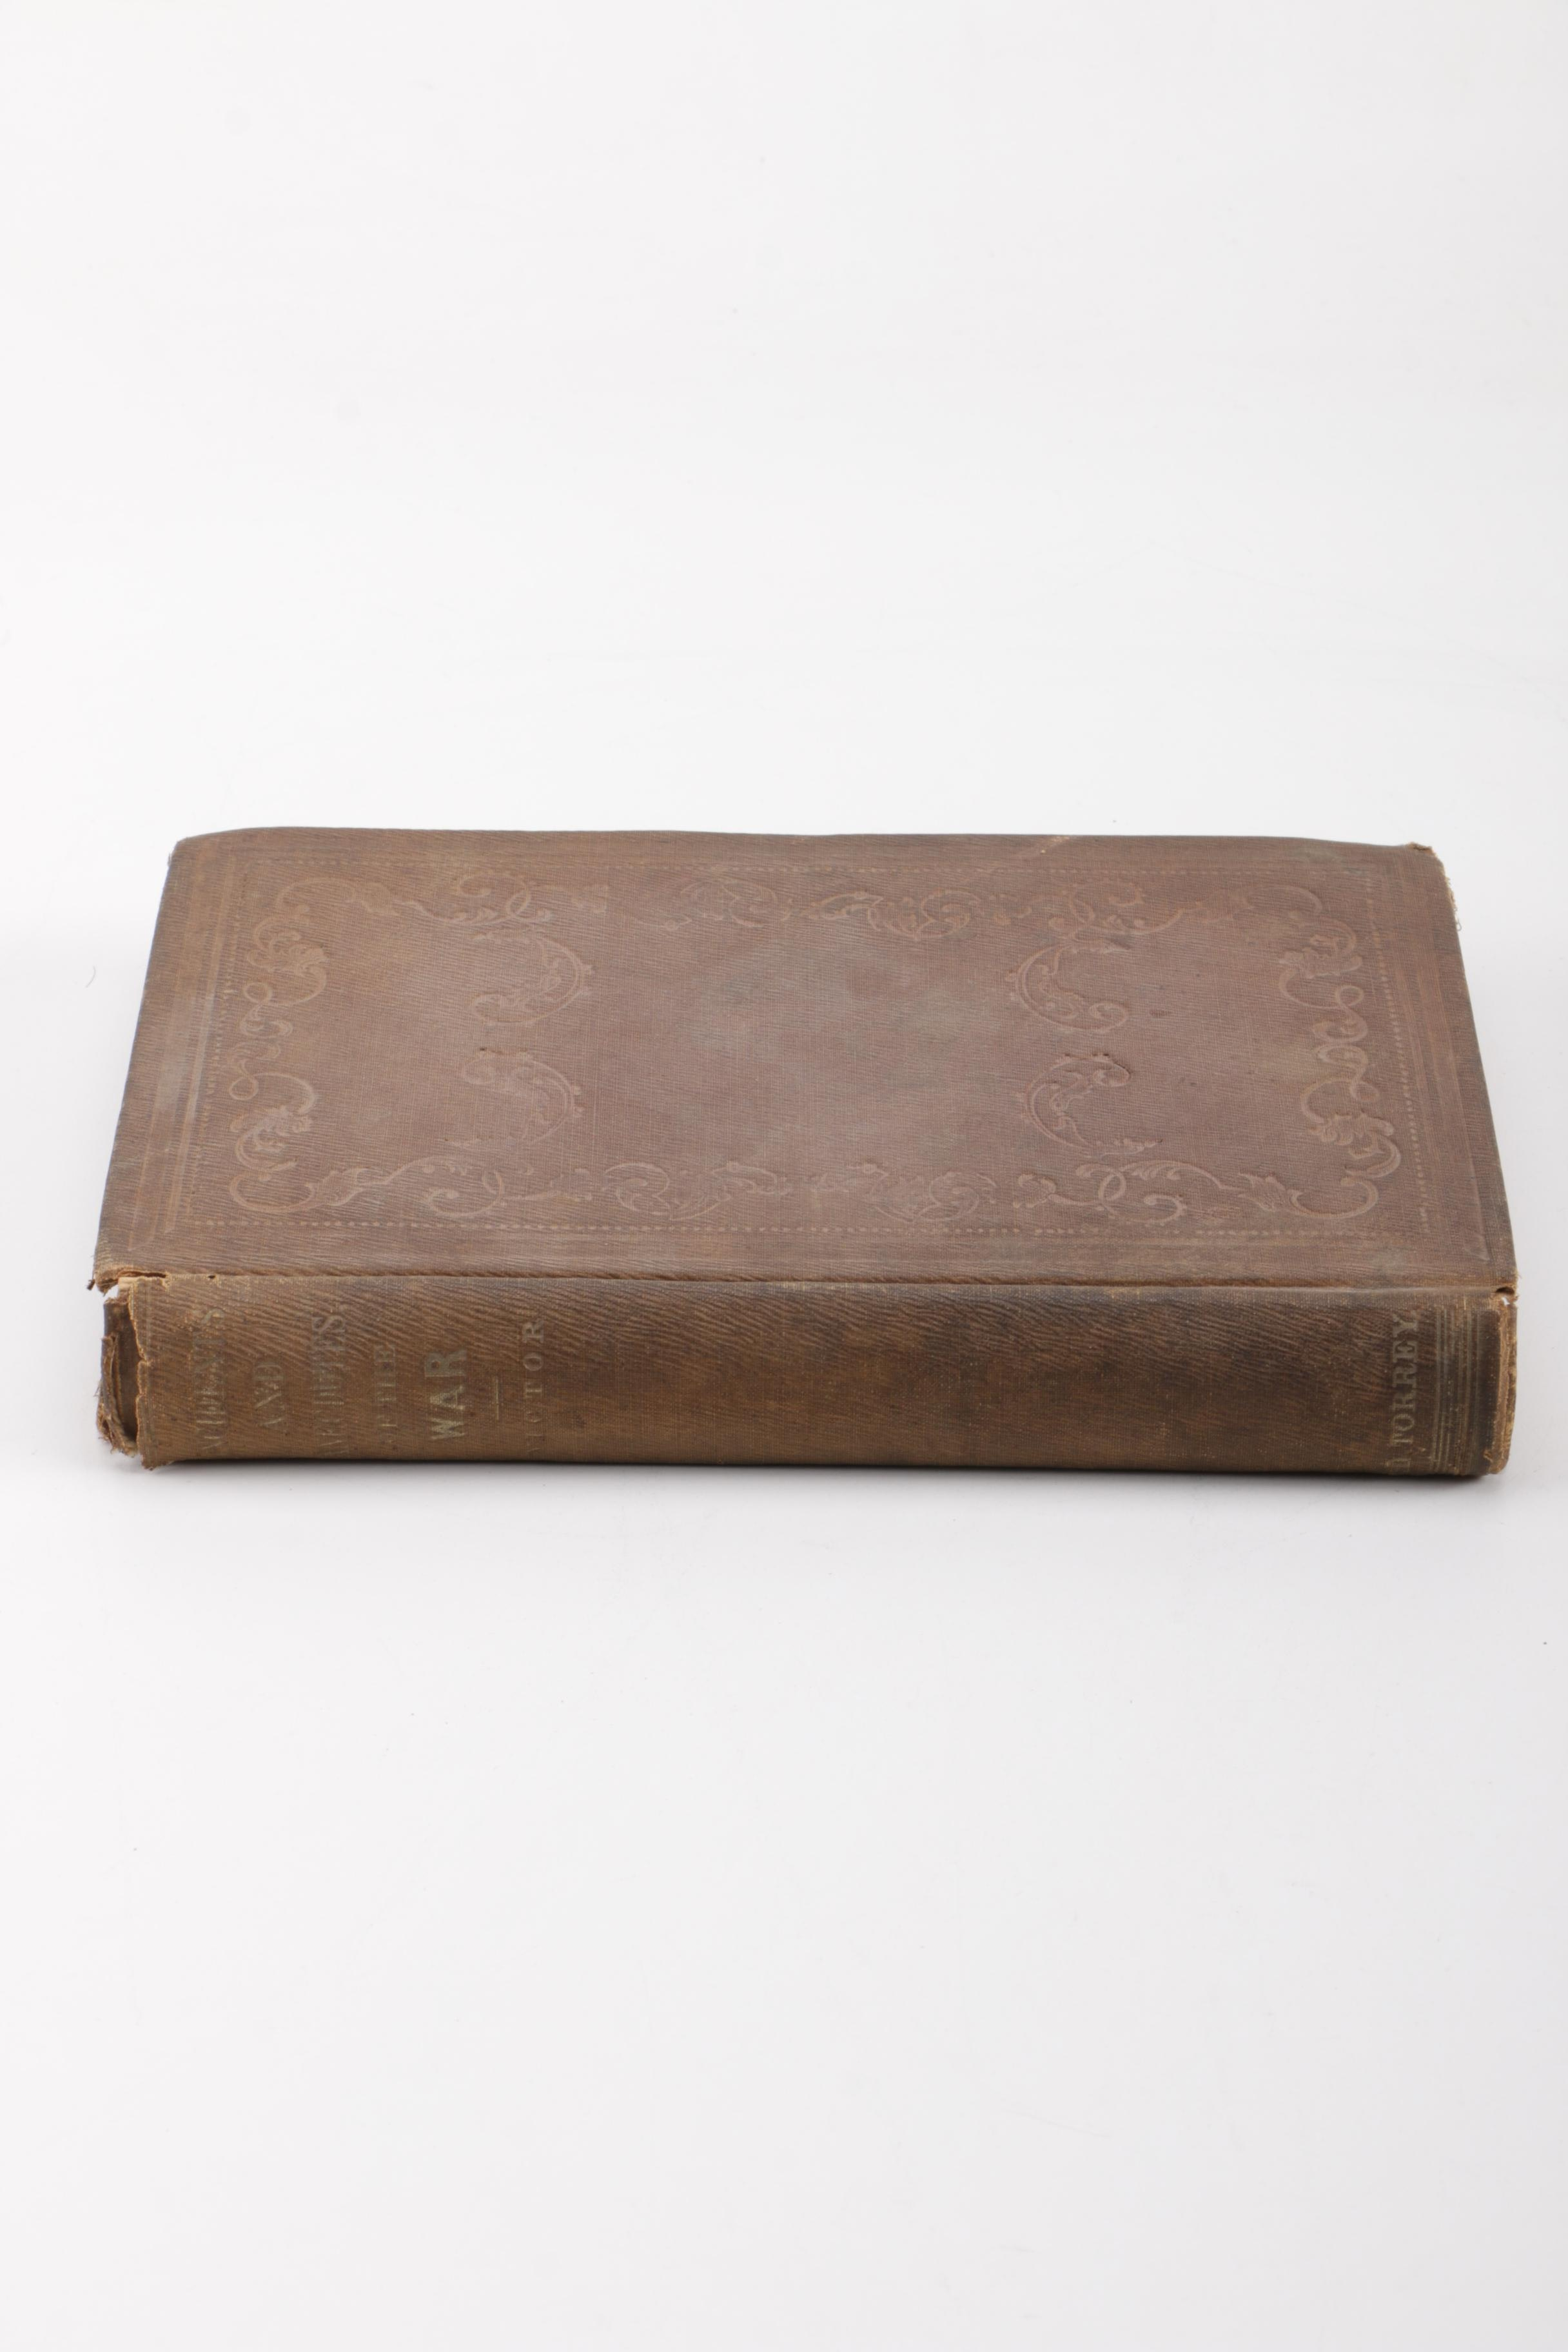 """1862 """"Incidents and Anecdotes of the War"""" by Orville James Victor"""